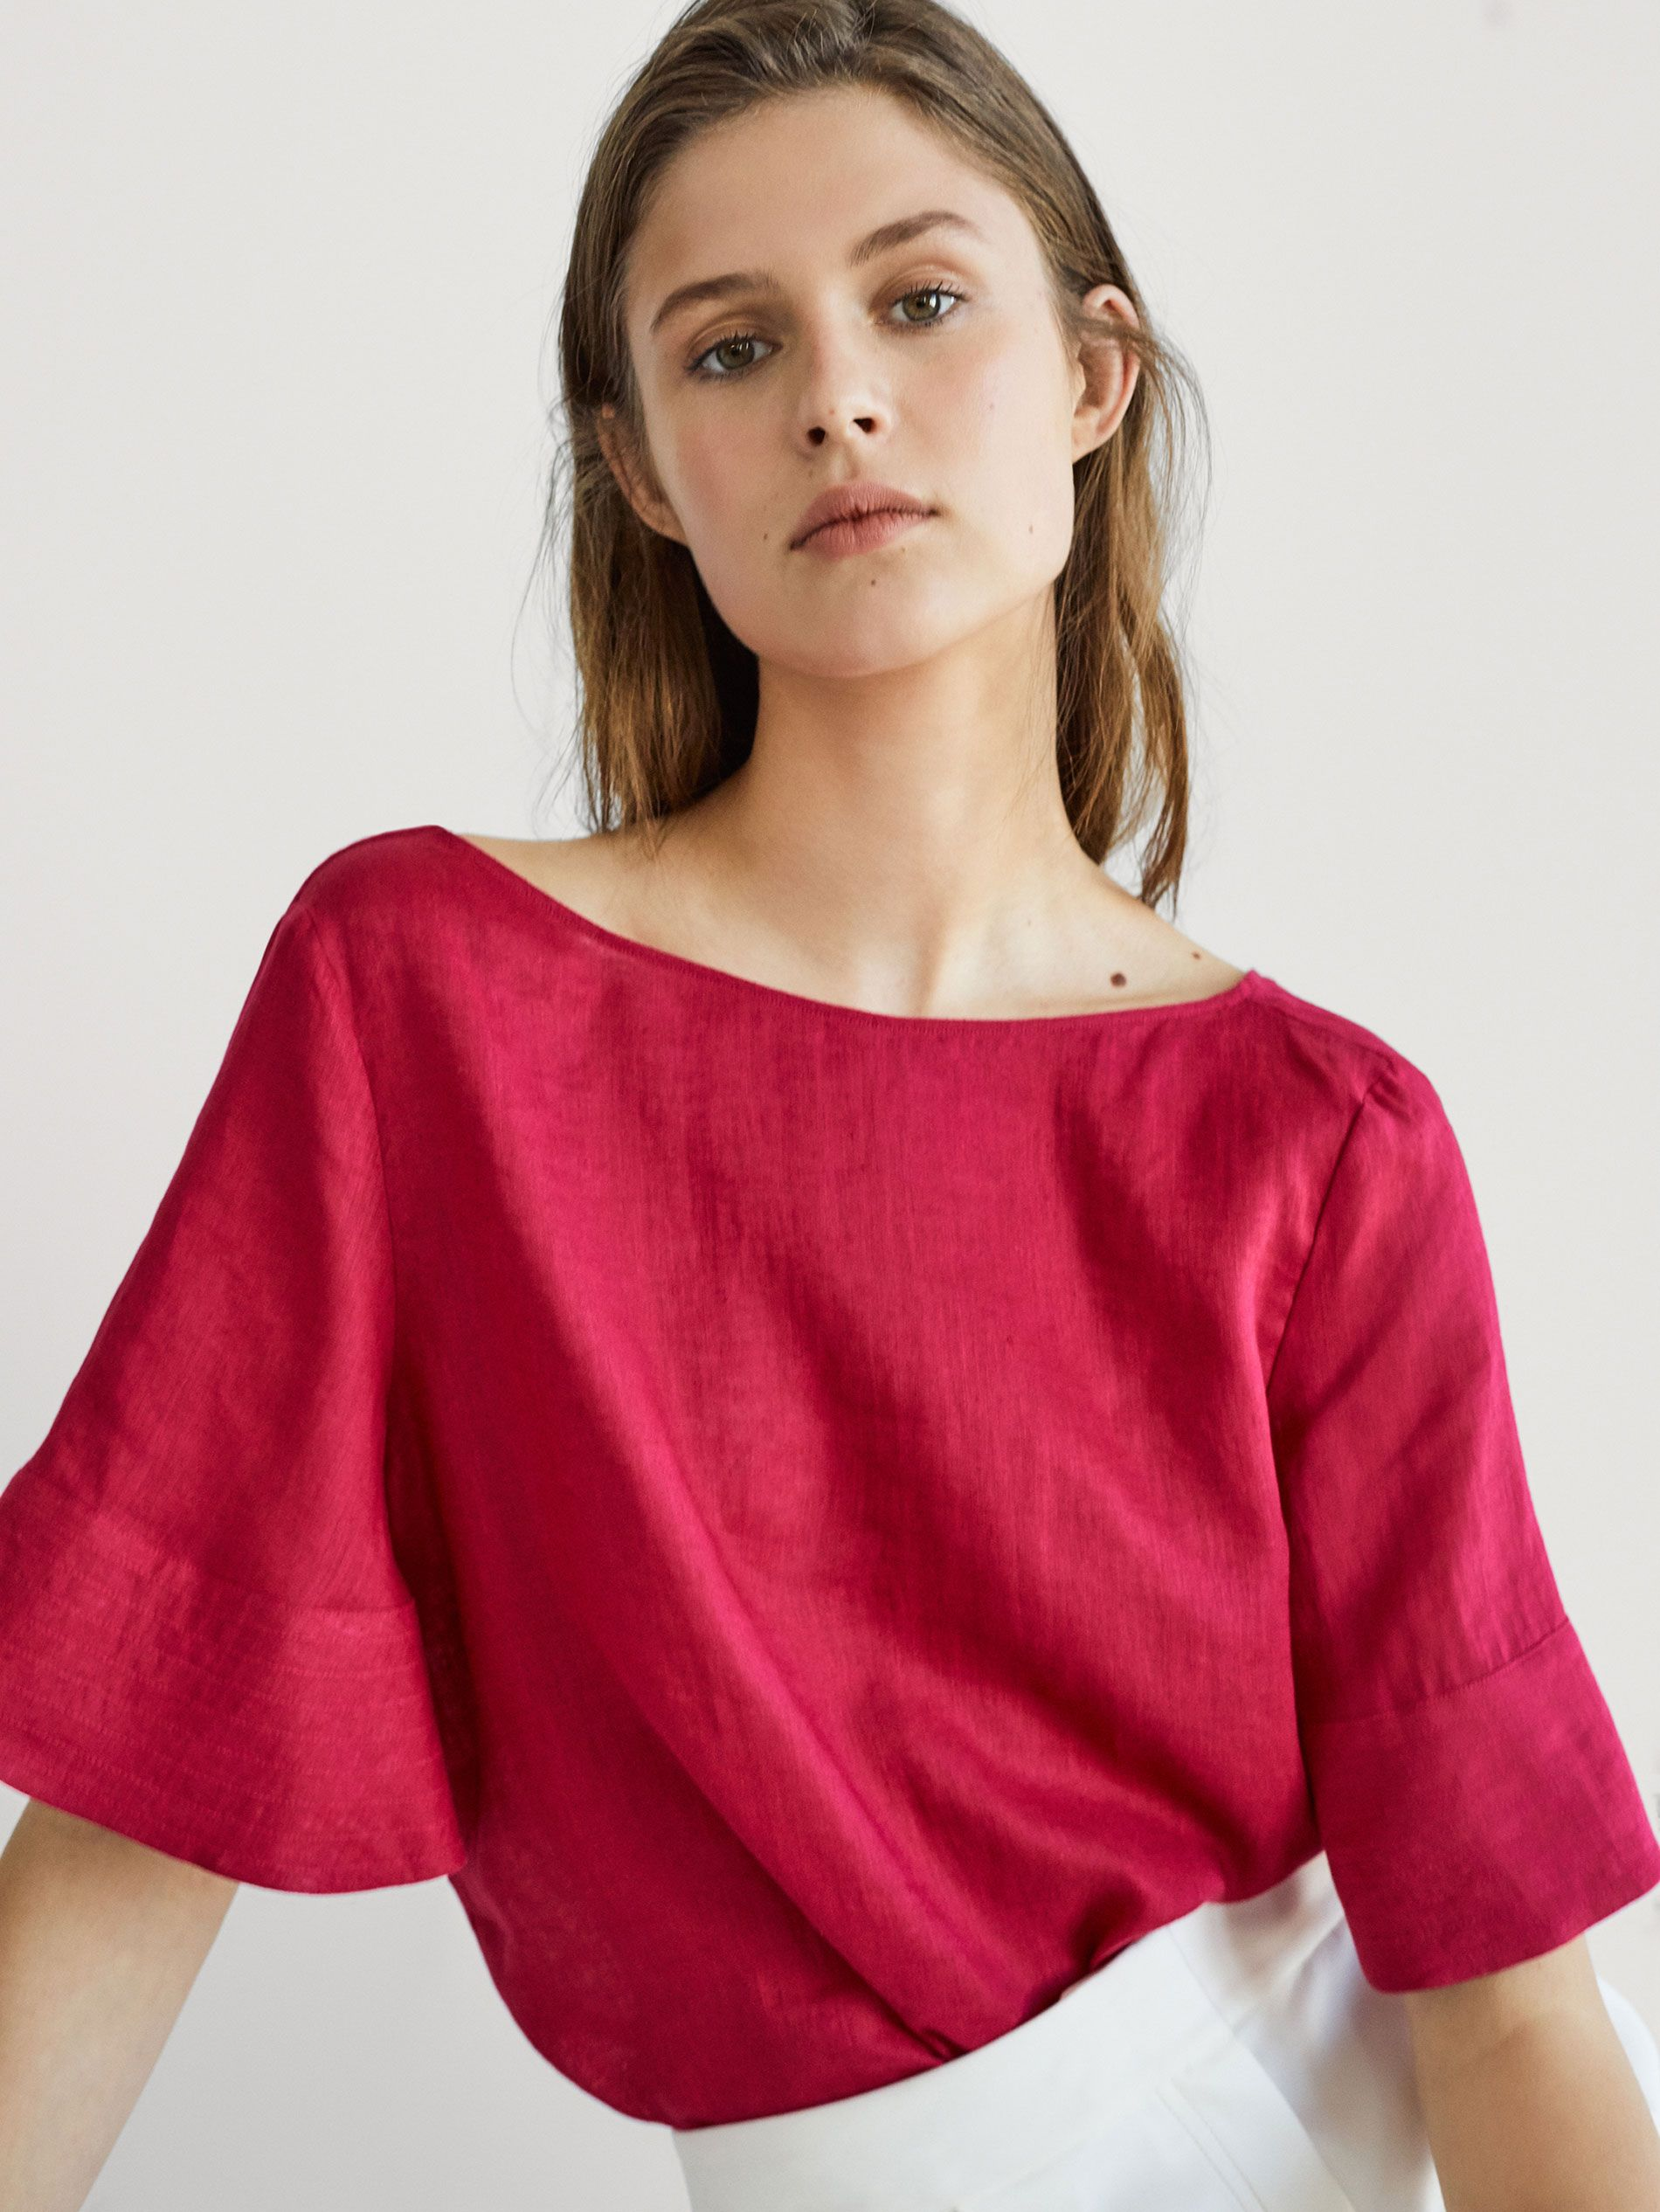 9adfdfb05969c9 LINEN TOP WITH TOPSTITCHING DETAIL - Women - Massimo Dutti